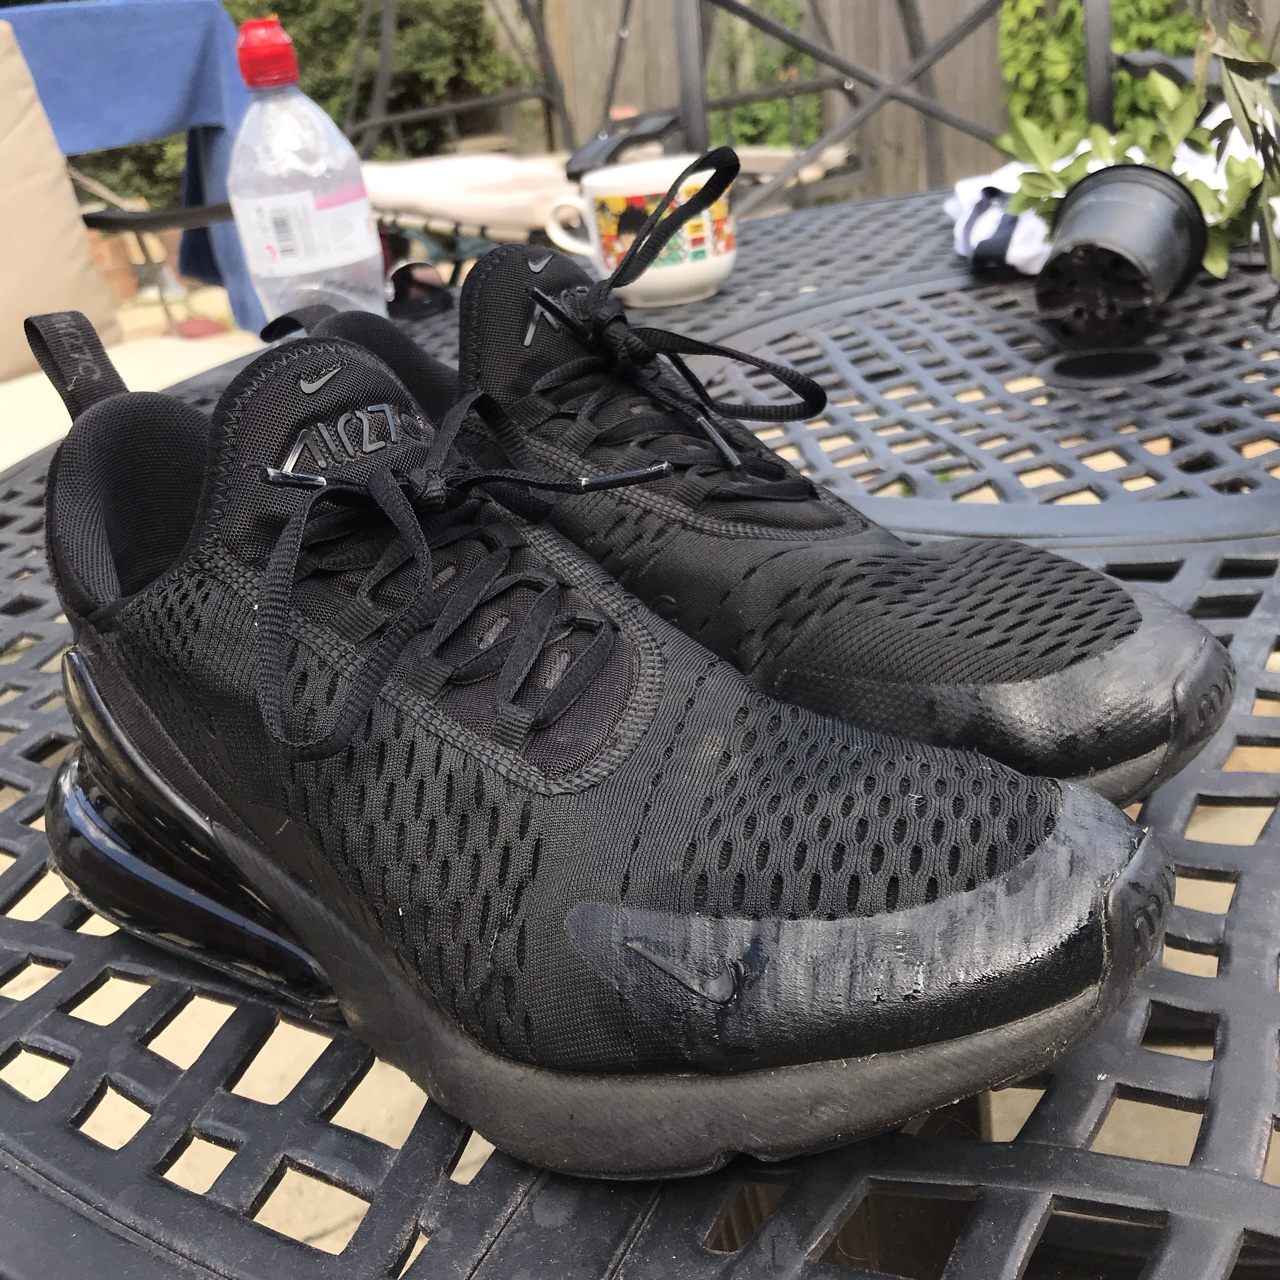 on sale ddb0b f4c61 Nike Air Max 270s Good Condition 8/10 All Black - Depop